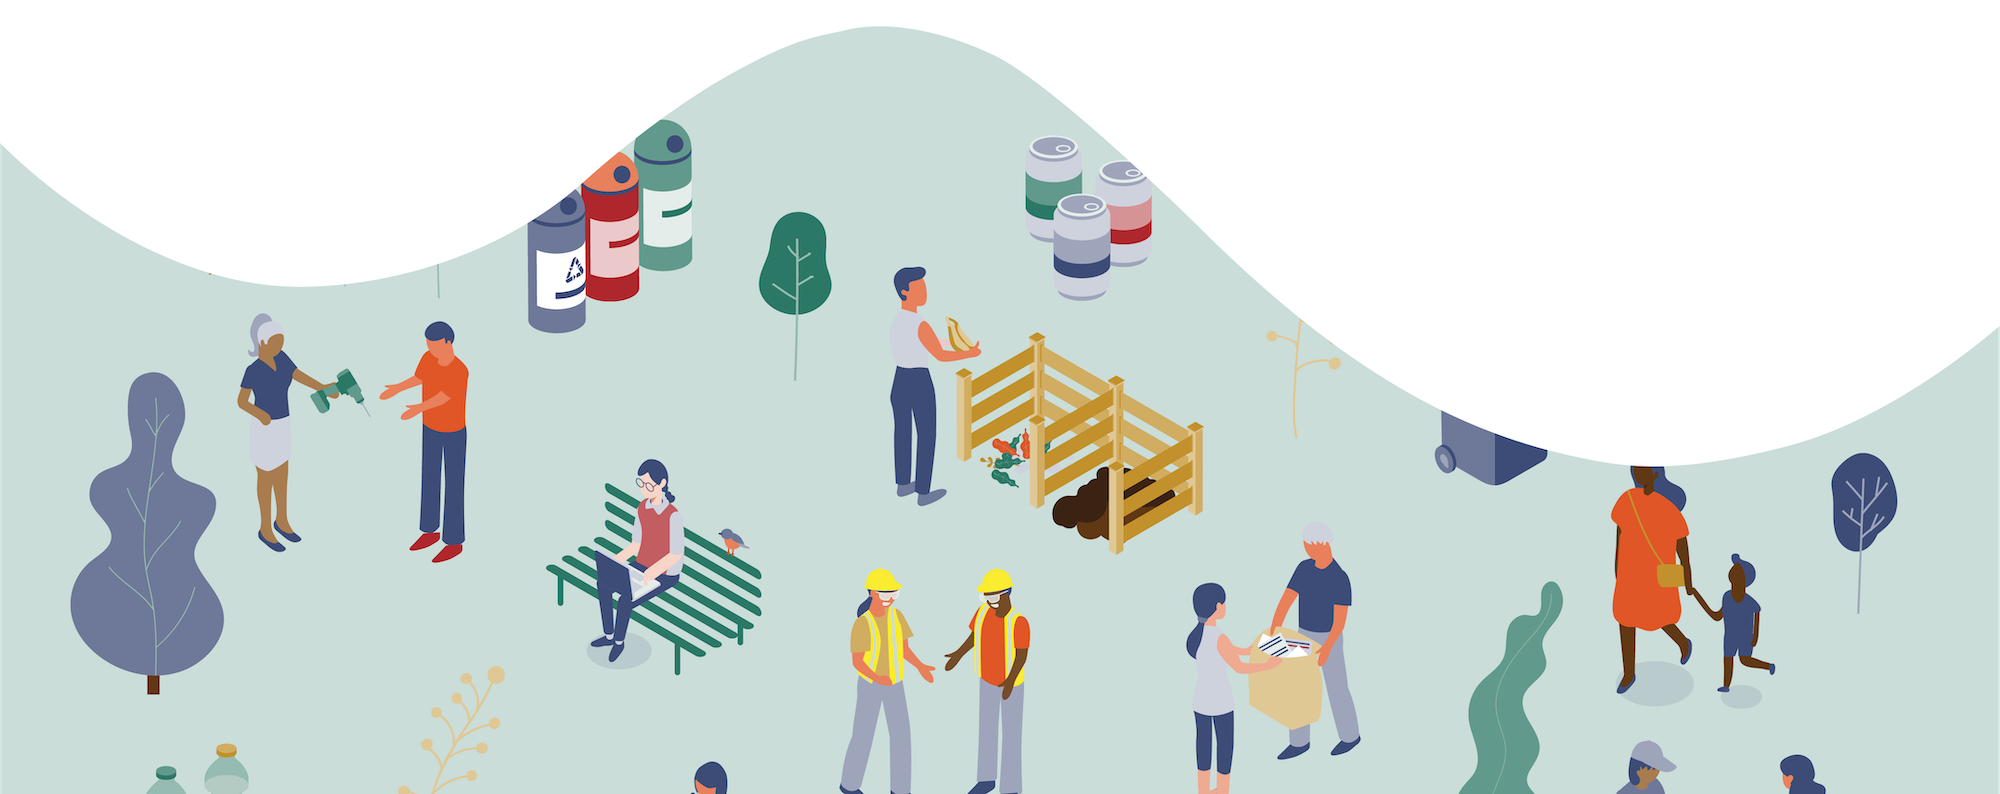 Cartoon graphic of people, trees, and recycling.